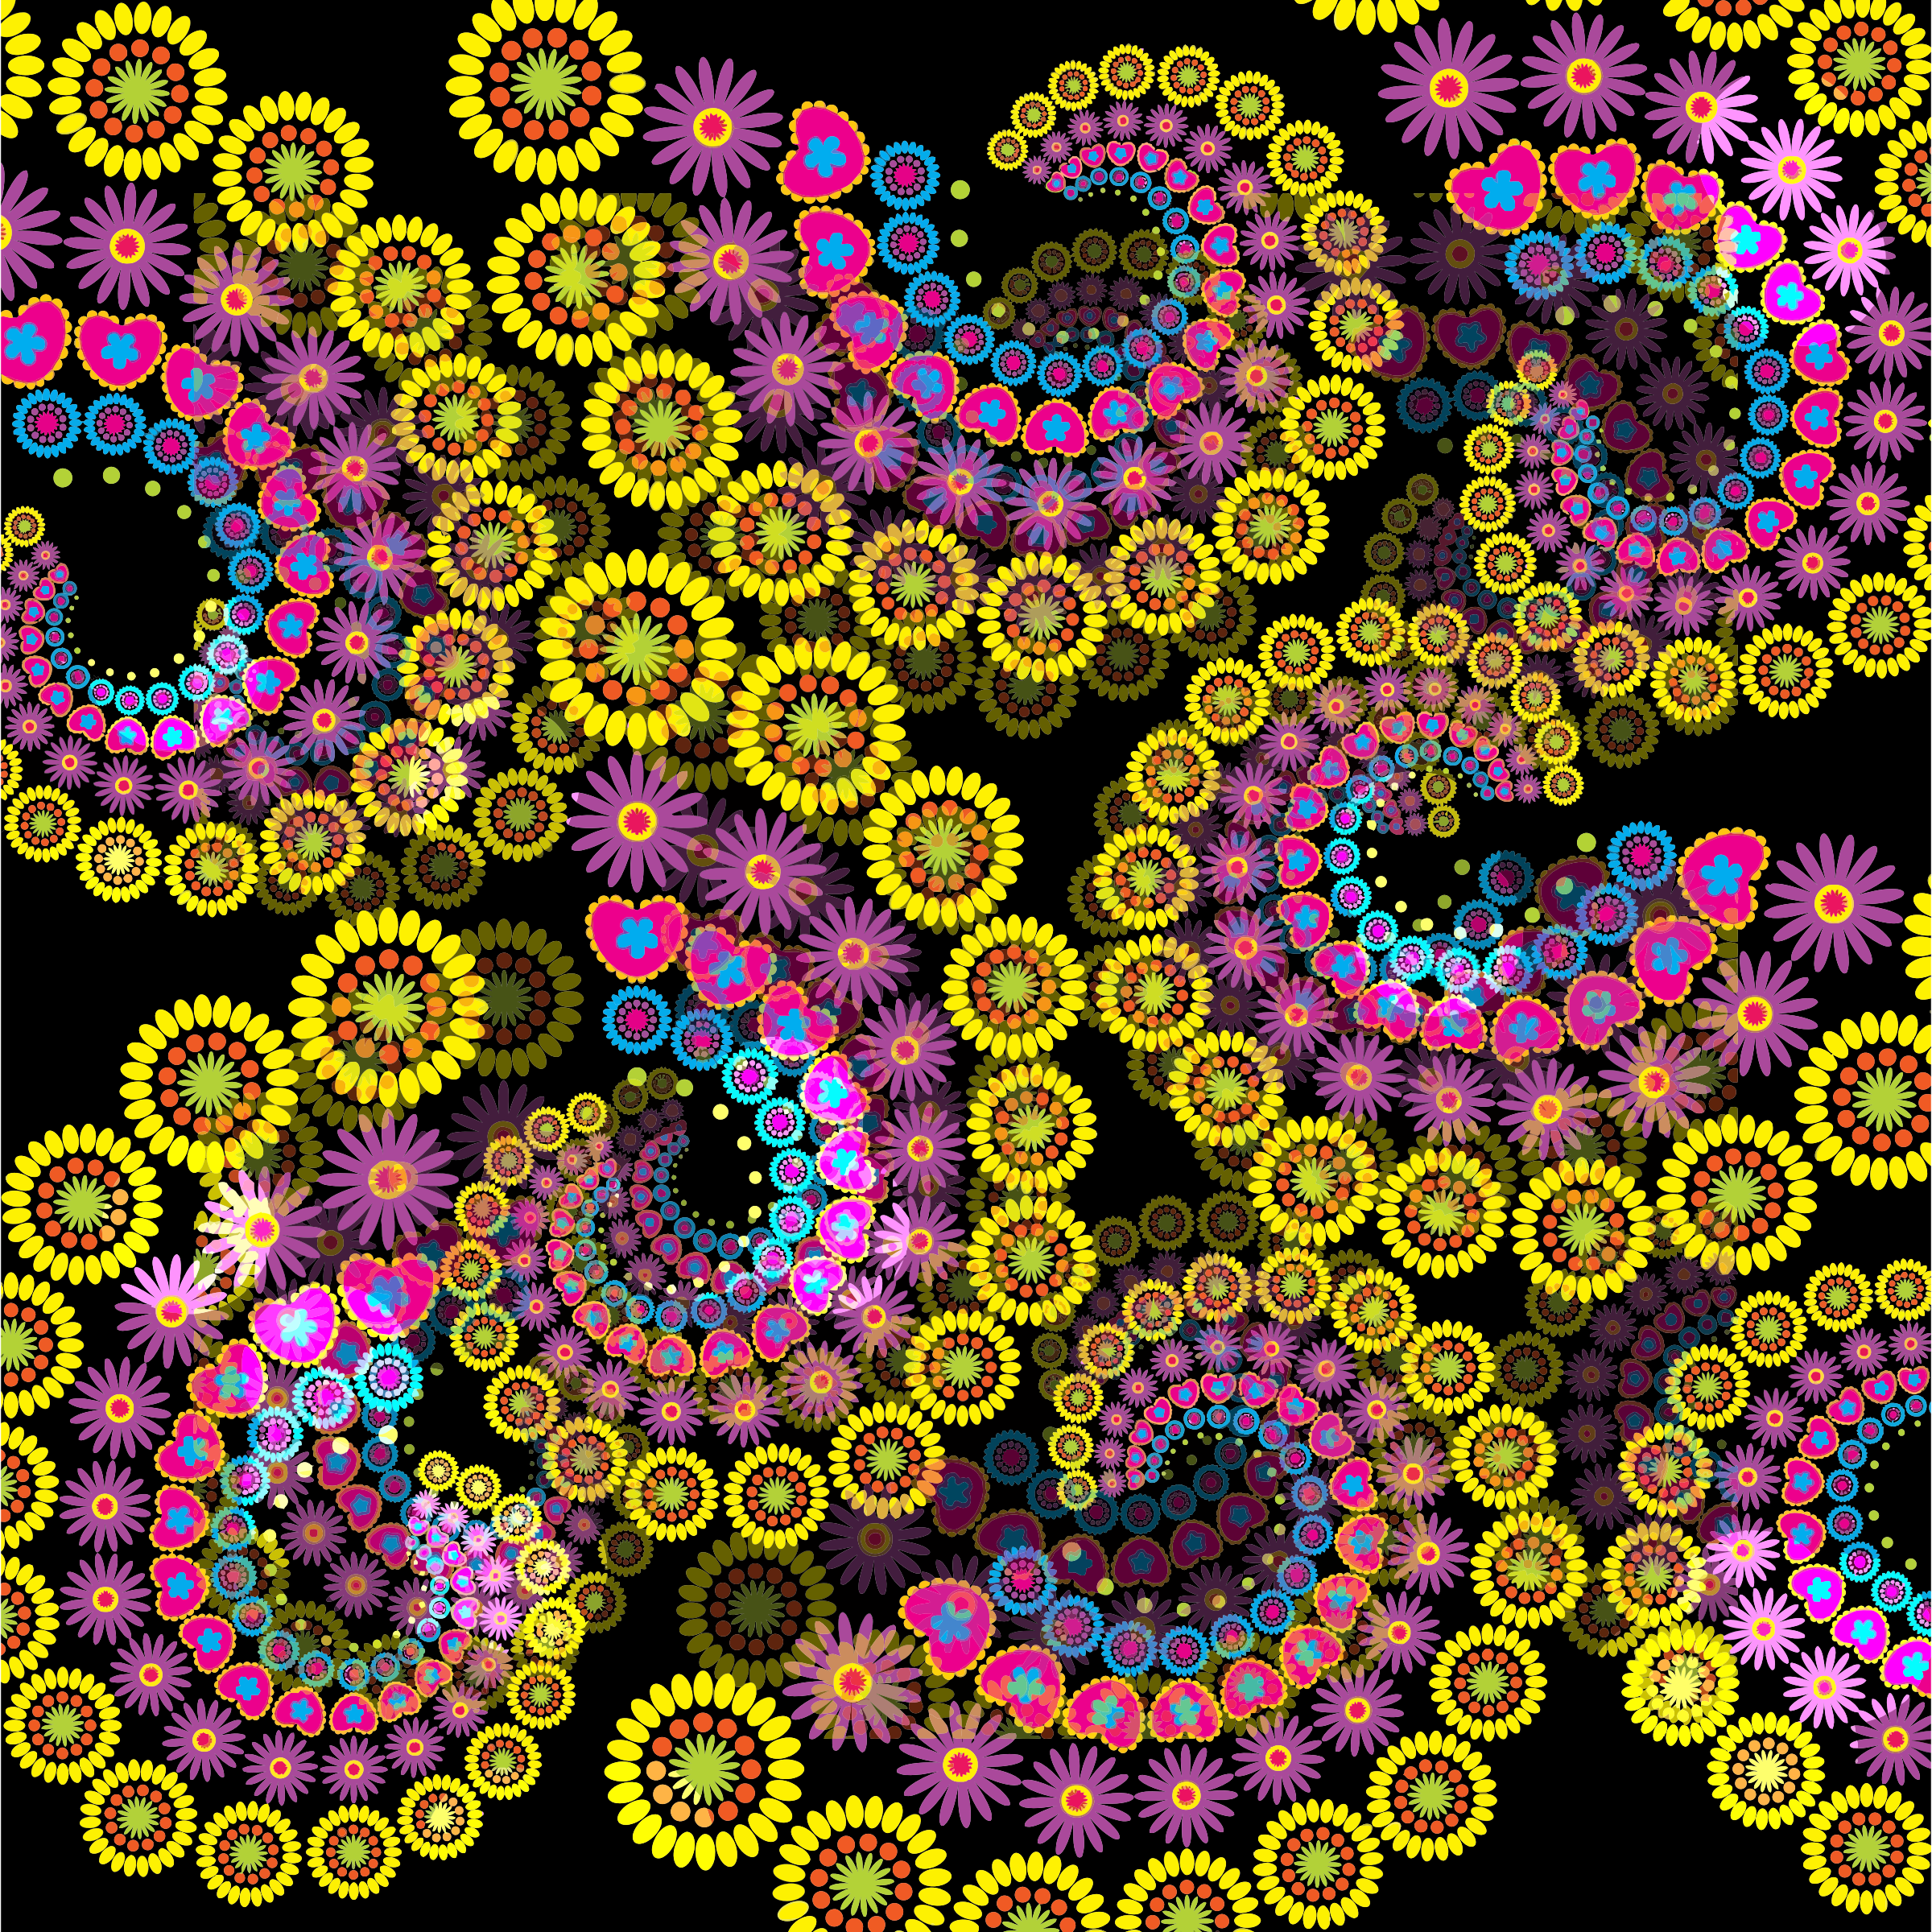 Fractal clipart #5, Download drawings